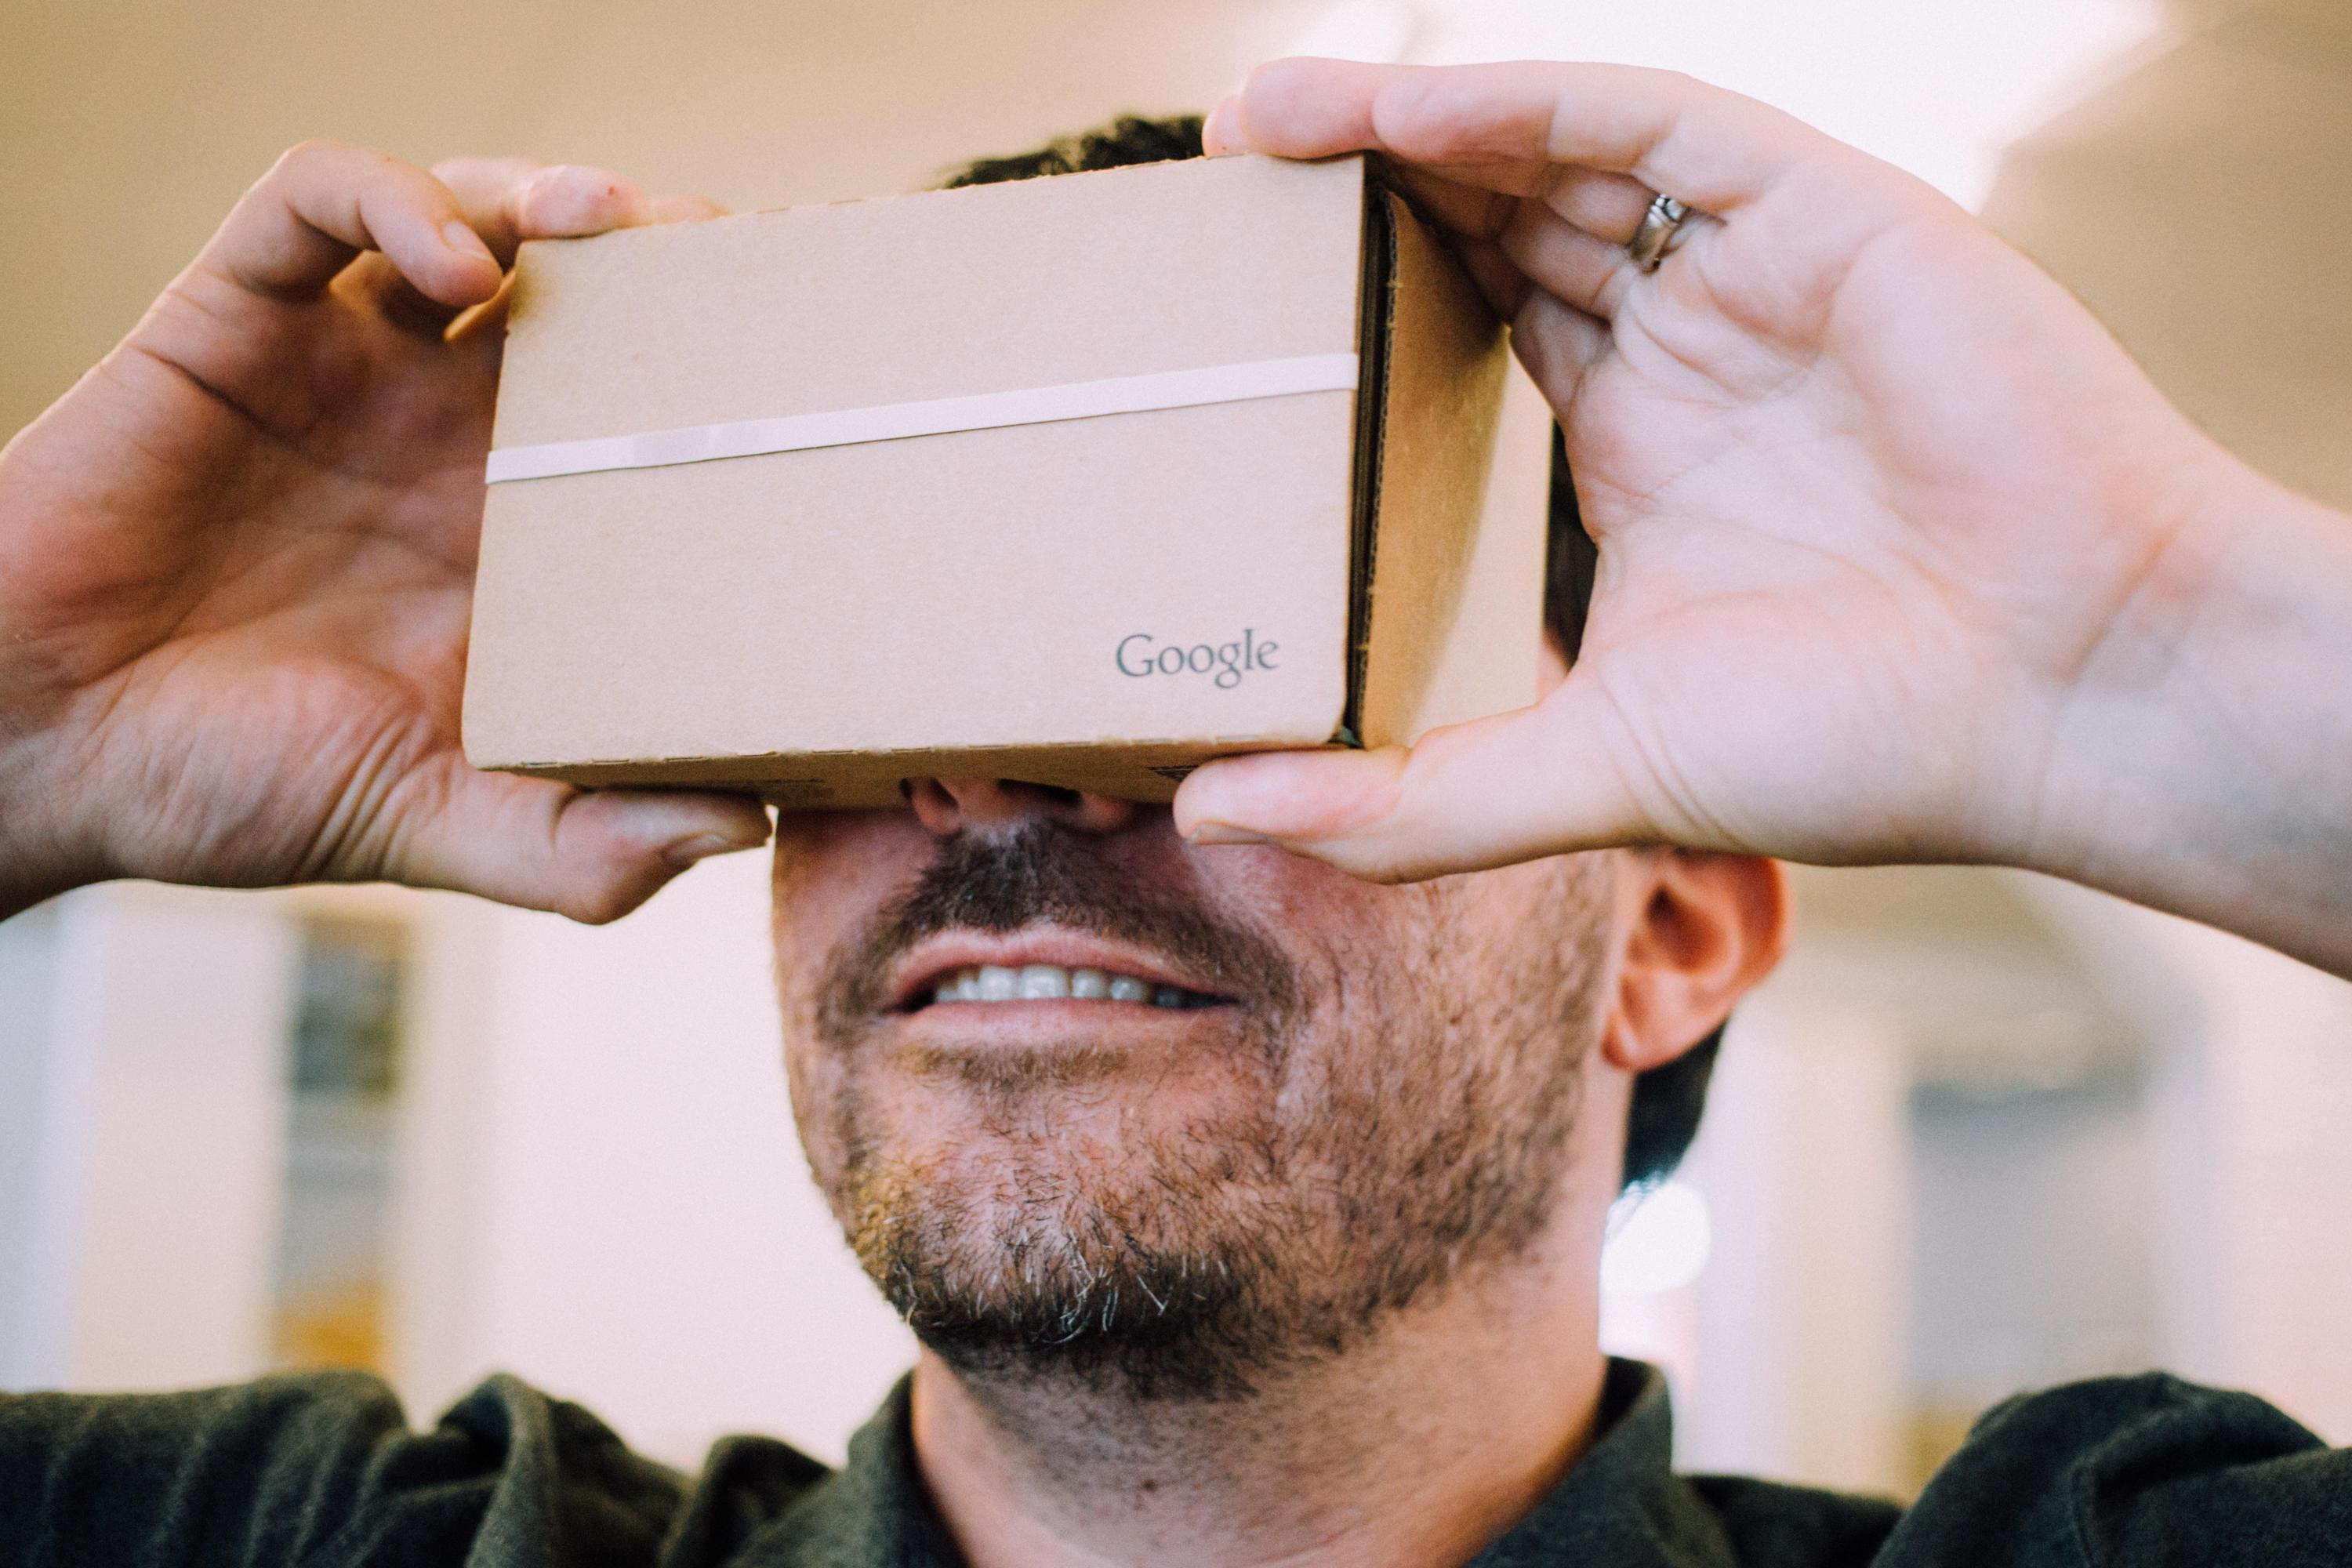 Virtually there: How Google is readying VR for you